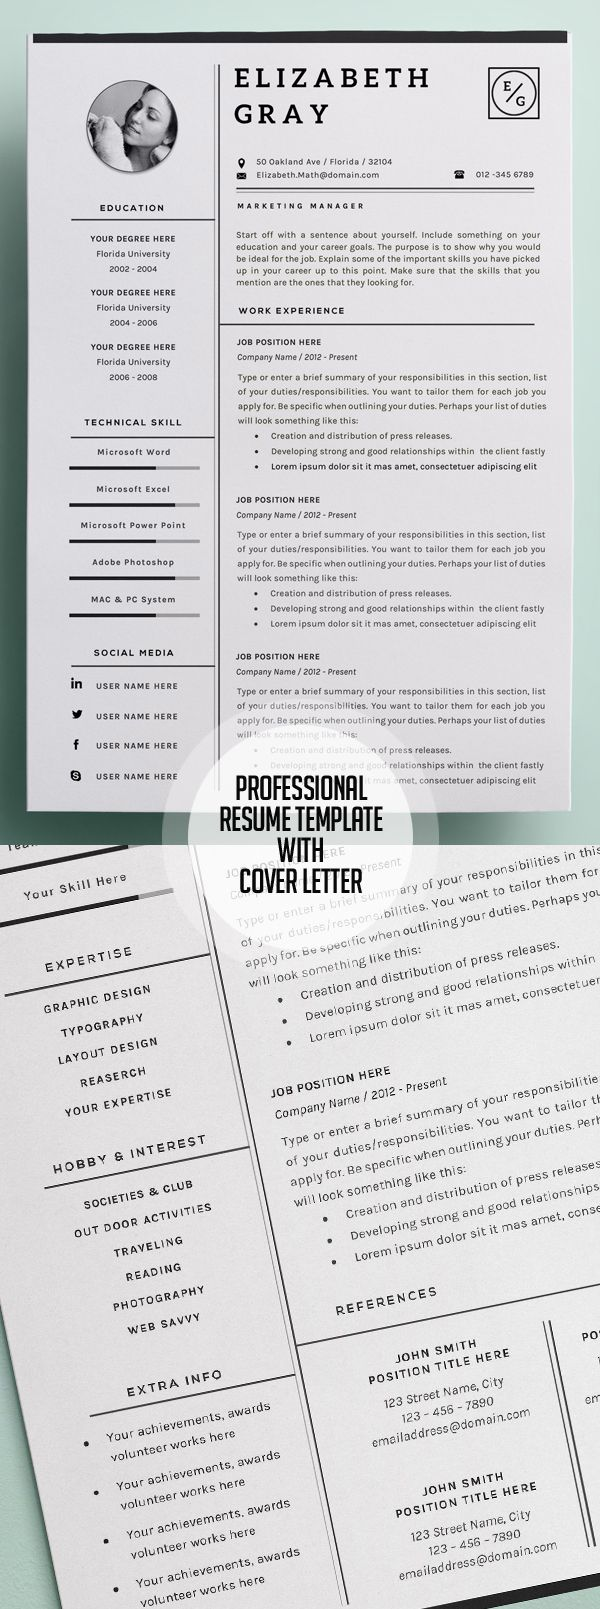 Opposenewapstandardsus  Prepossessing  Resume Ideas On Pinterest  Resume Resume Templates And  With Hot Professional And Modern Resume Template With Page Cover Cvtemplate With Astounding Cover Pages For Resumes Also Cafeteria Worker Resume In Addition Sample Of Cna Resume And Investor Relations Resume As Well As How To Make A Free Resume Step By Step Additionally Making A Professional Resume From Pinterestcom With Opposenewapstandardsus  Hot  Resume Ideas On Pinterest  Resume Resume Templates And  With Astounding Professional And Modern Resume Template With Page Cover Cvtemplate And Prepossessing Cover Pages For Resumes Also Cafeteria Worker Resume In Addition Sample Of Cna Resume From Pinterestcom